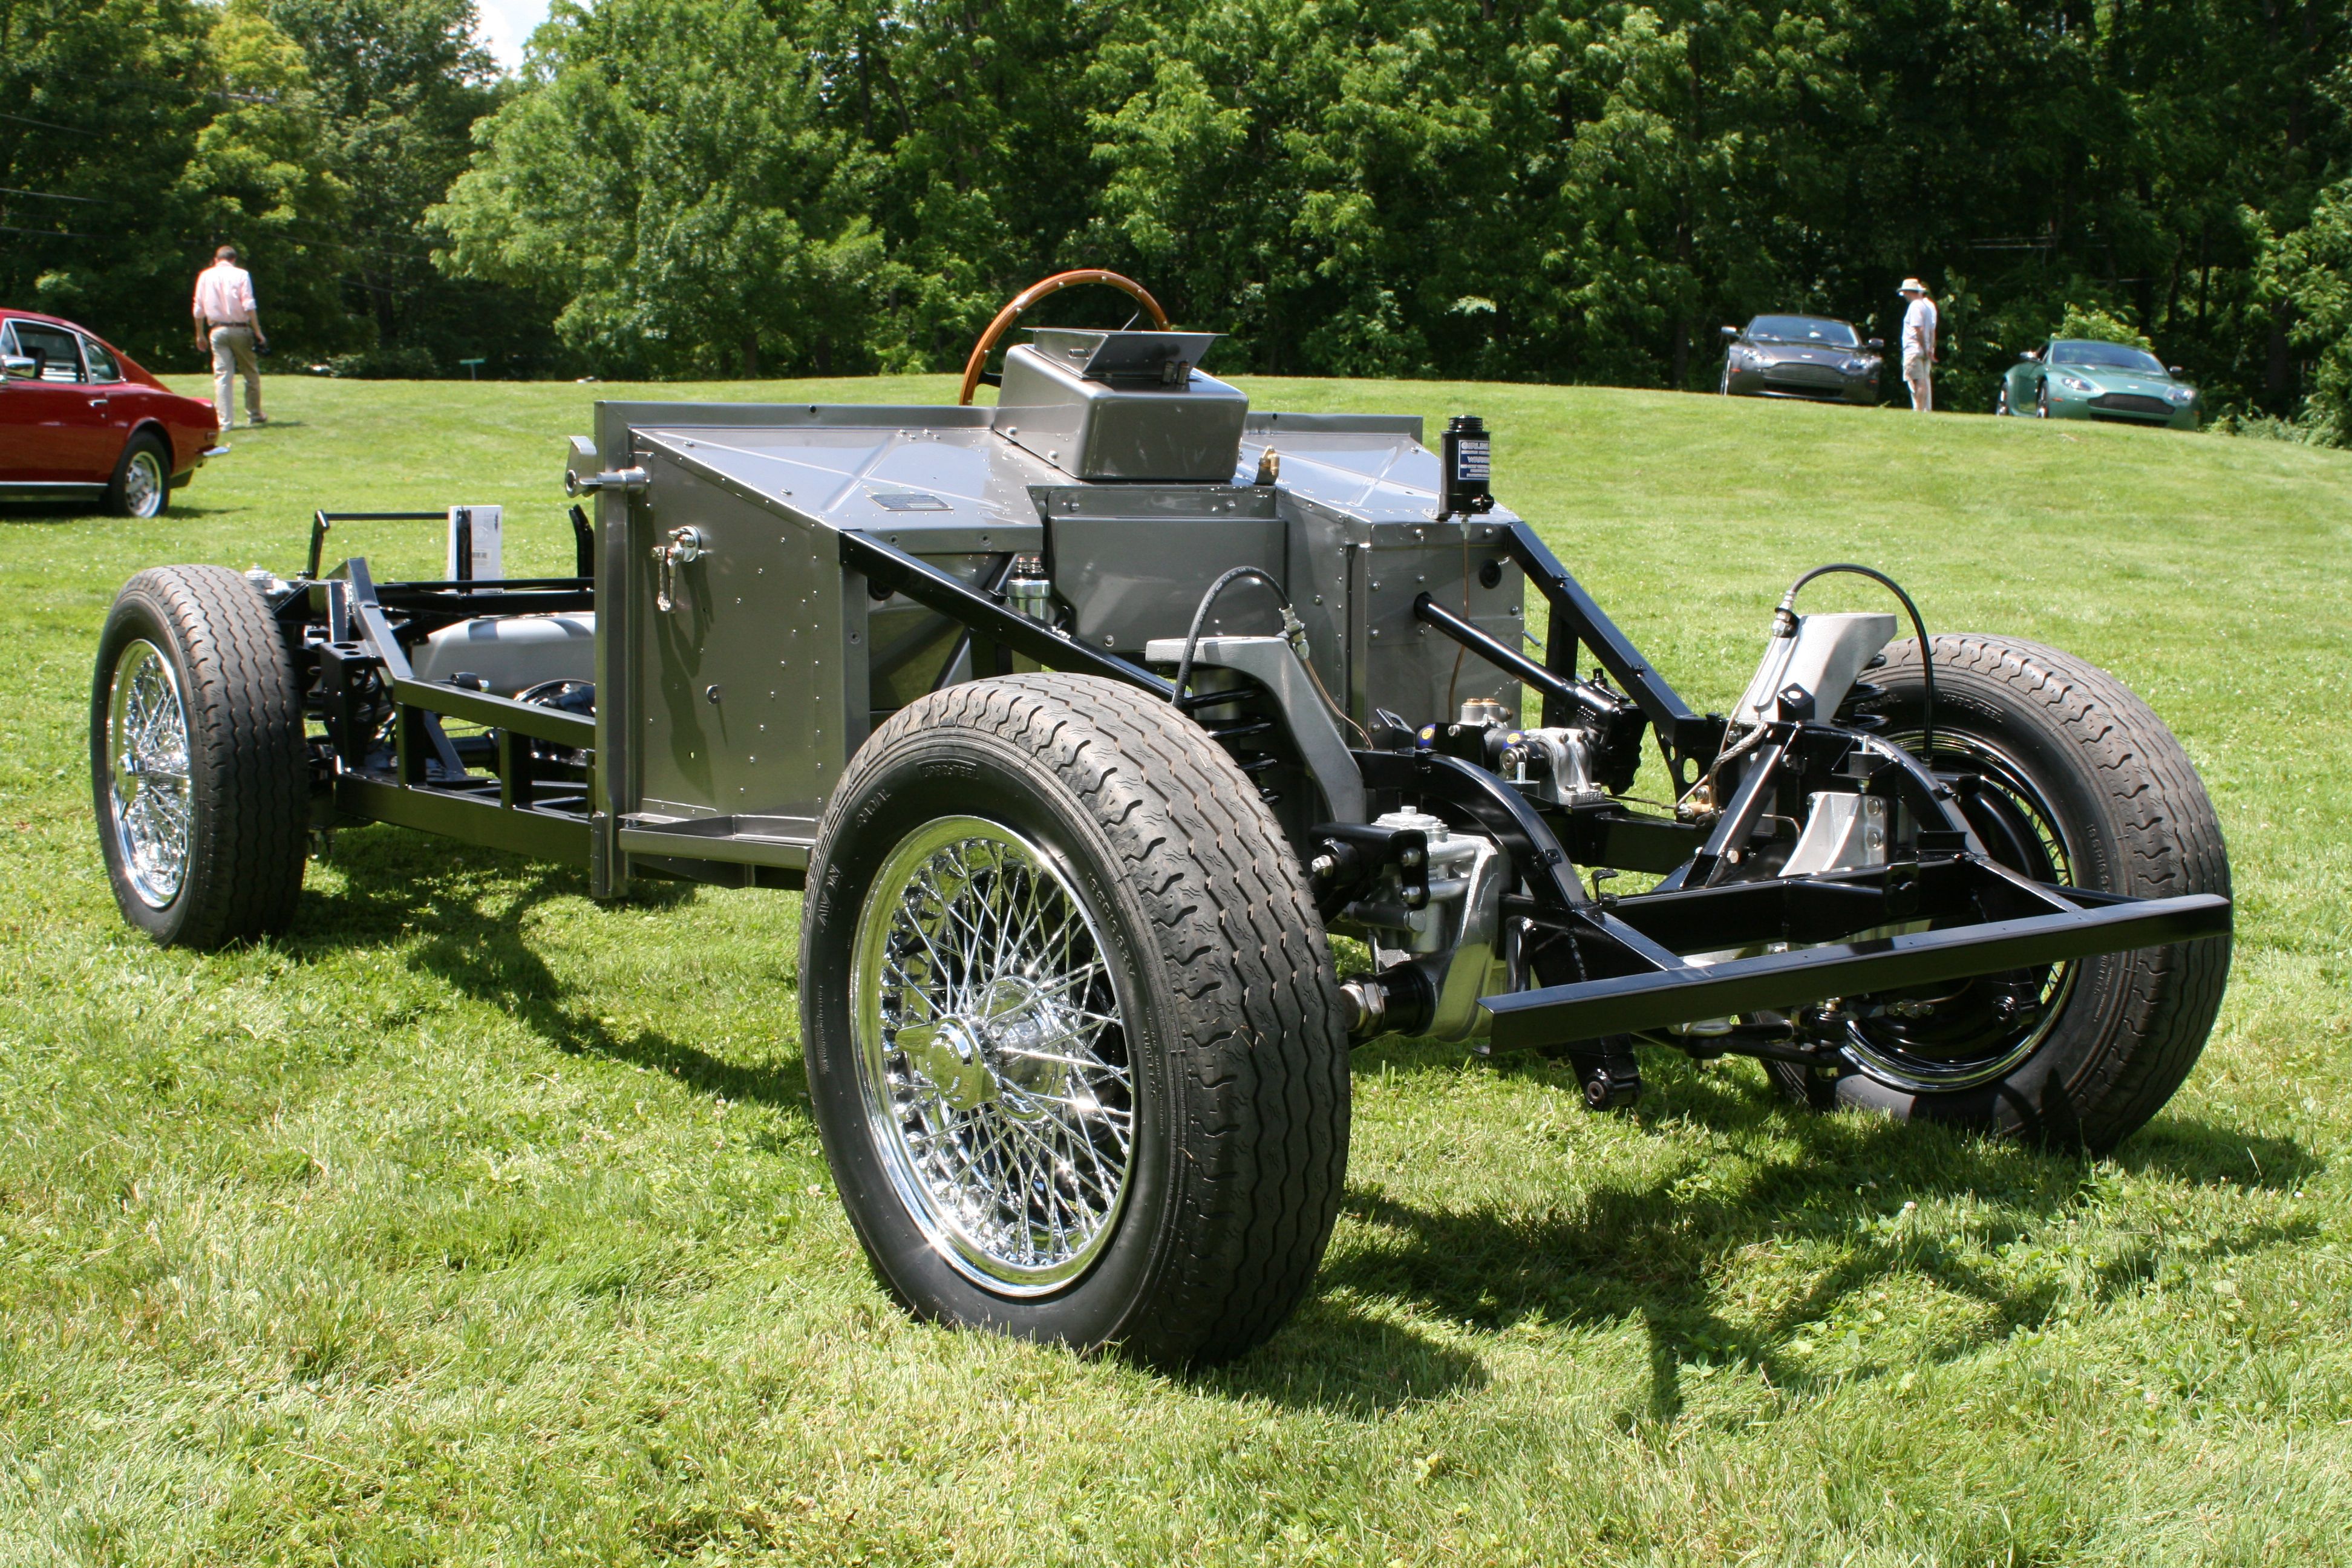 Chassis Frame, Body, Optional Extras